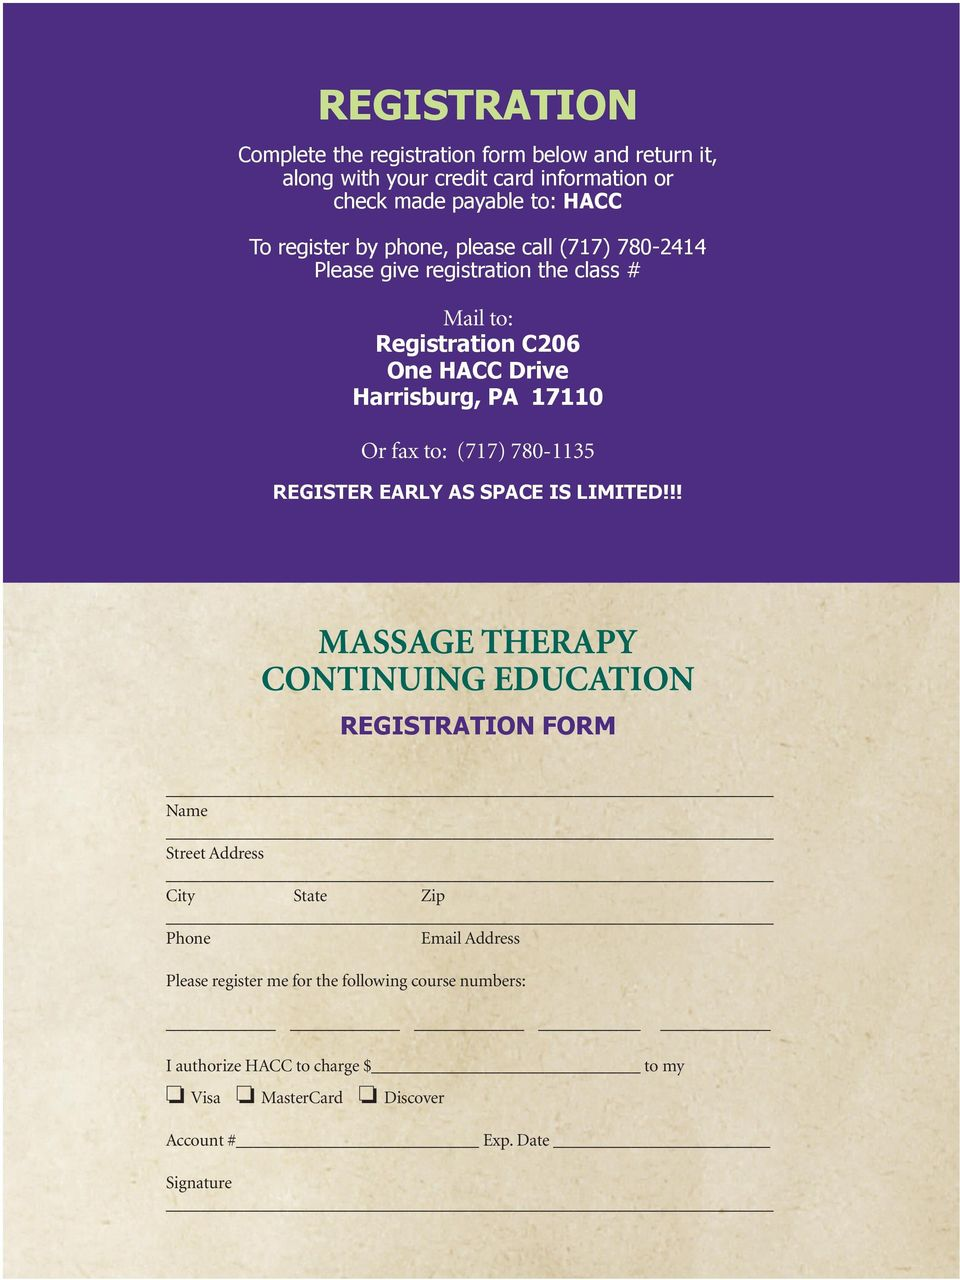 Massage Therapy Continuing Education Offerings Springsummer Pdf